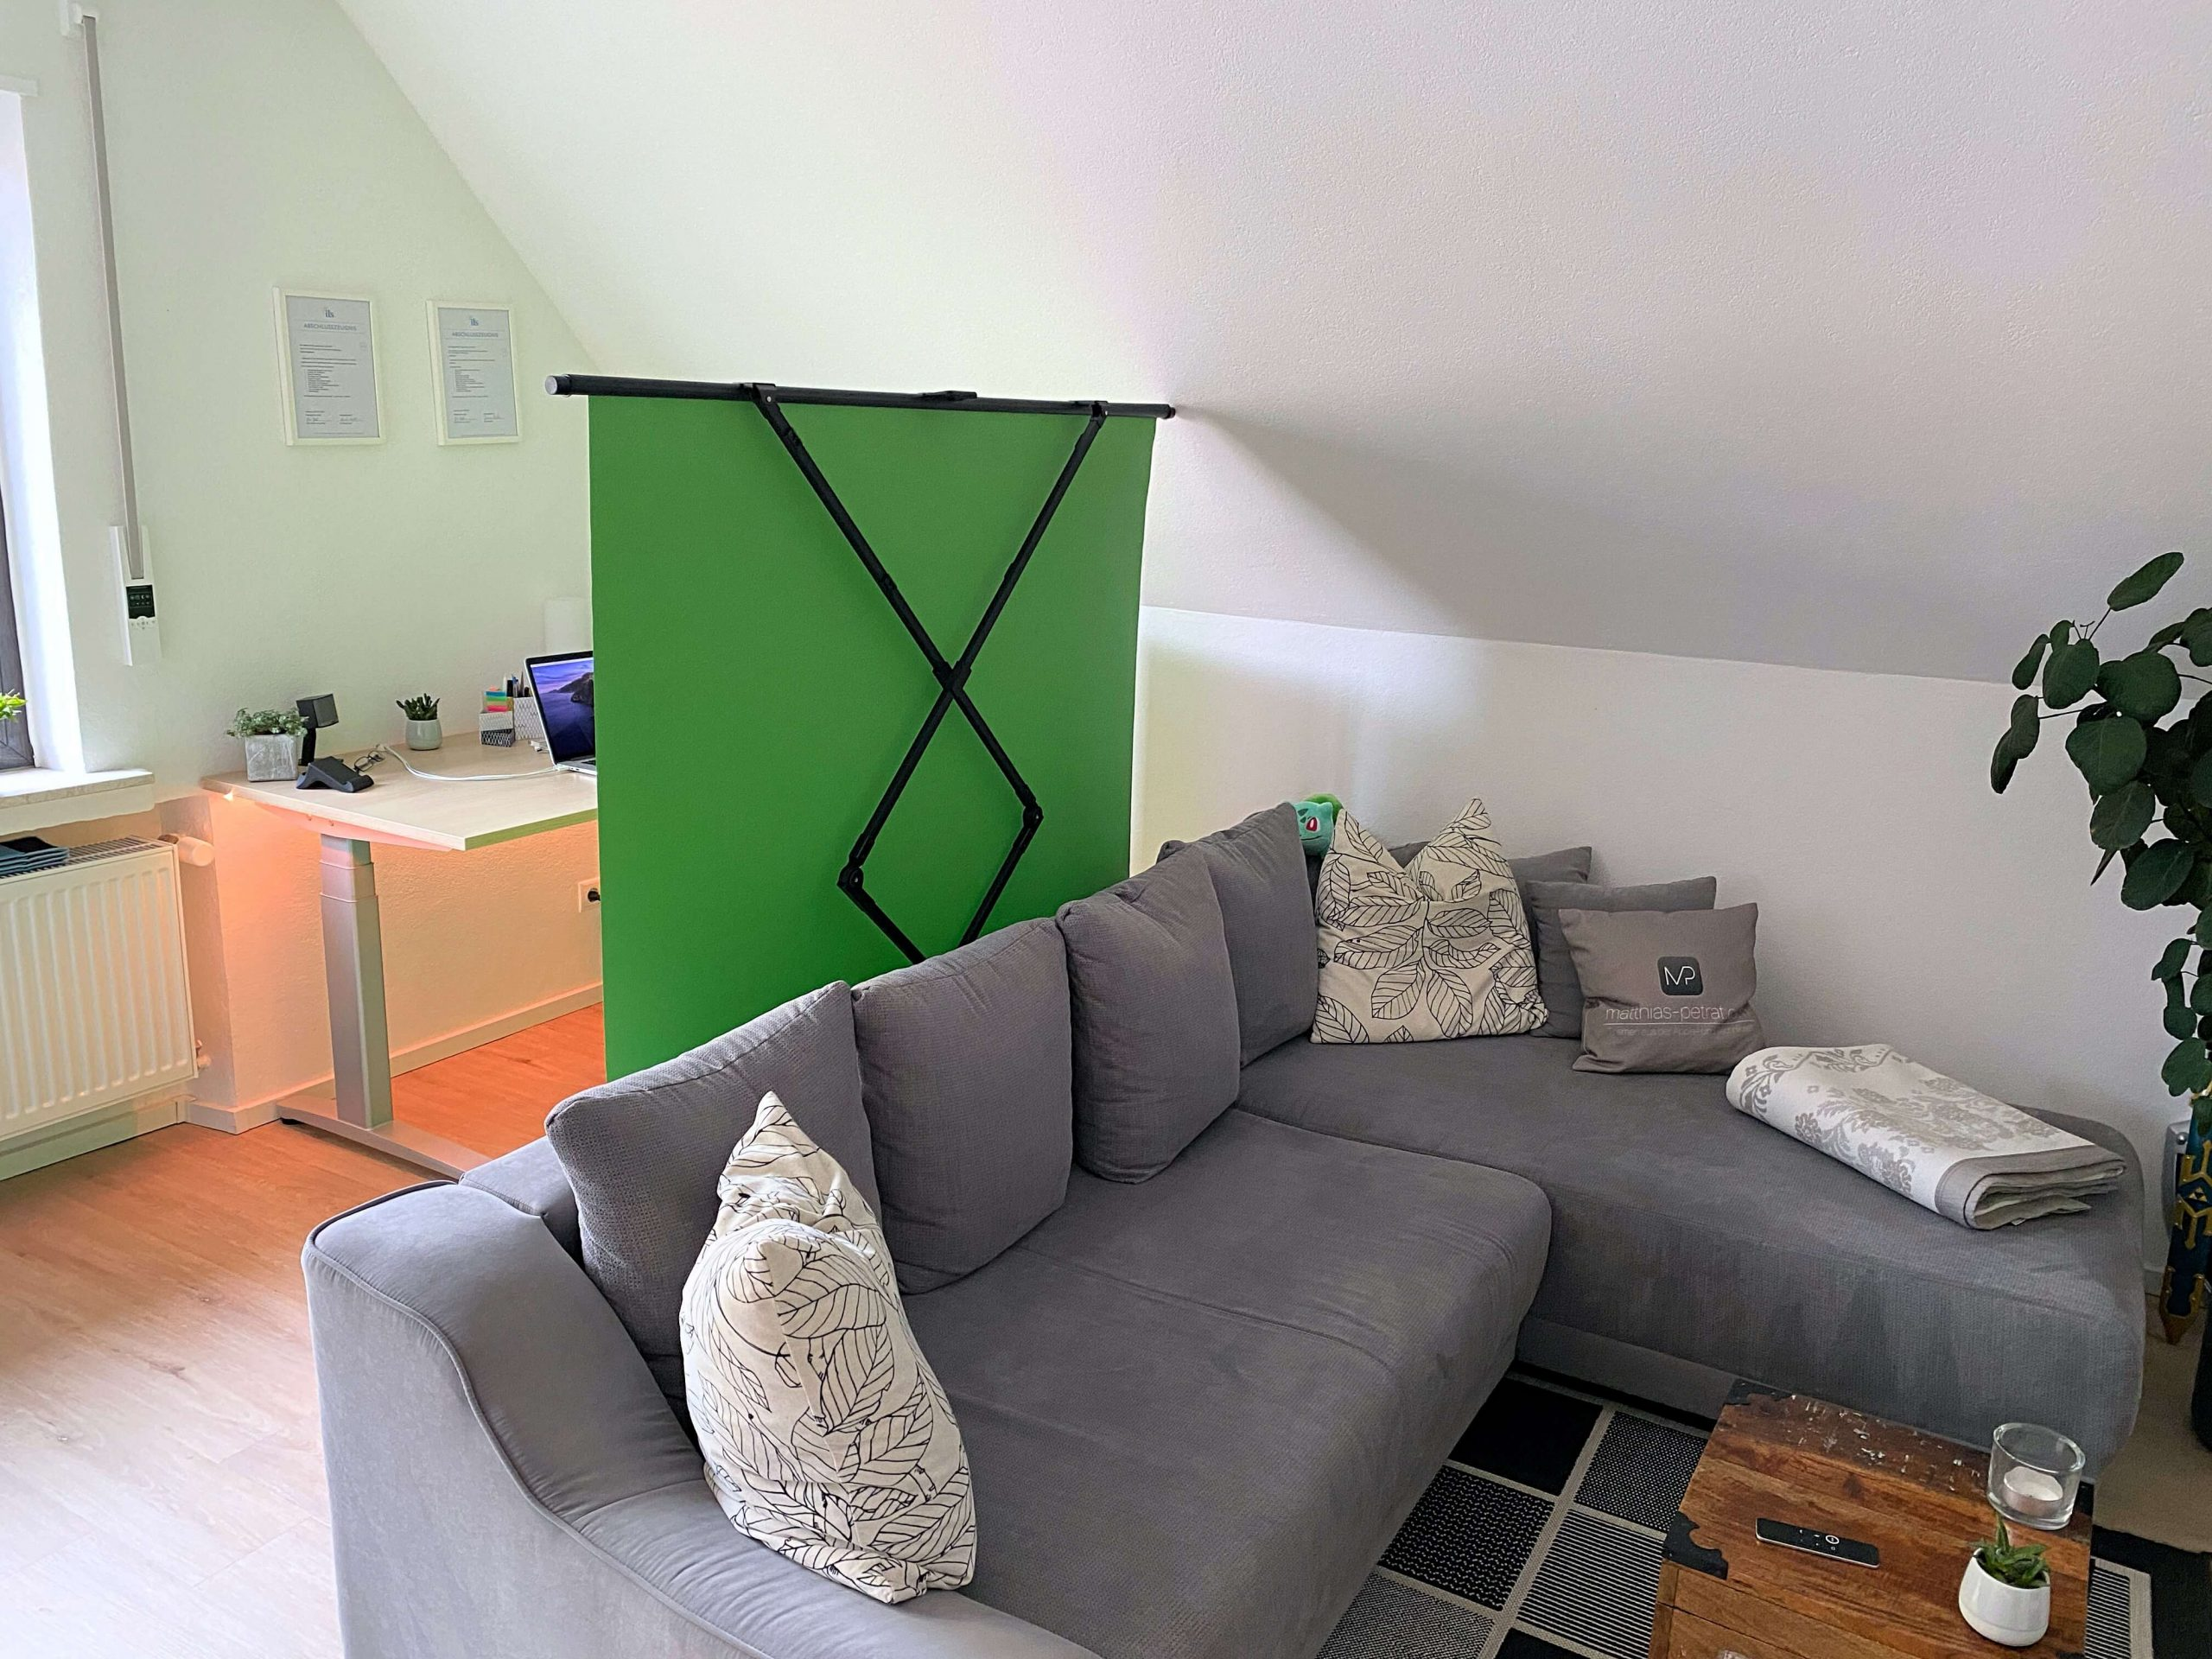 Green-Screen-von-Elgato-pro­fes­si­o­nelle-Hintergrundentfernung-im-Home-Office3-scaled Green Screen von Elgato - pro­fes­si­o­nelle Hintergrundentfernung im Home-Office